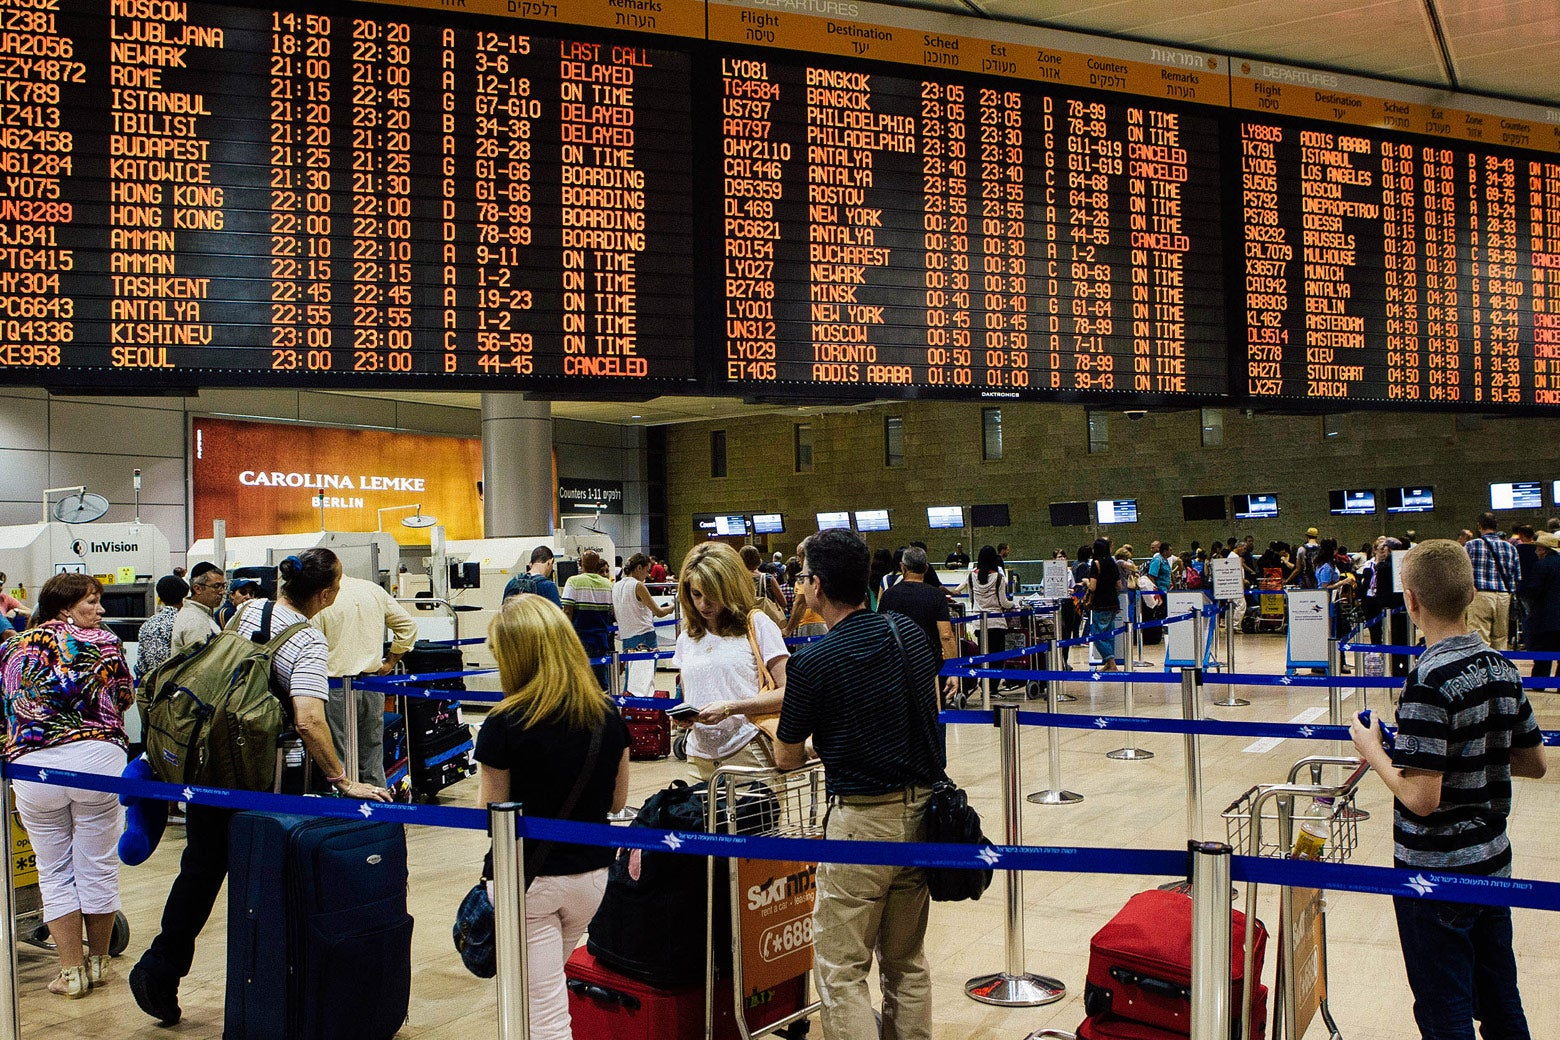 People stand in line below a departures and arrivals board.